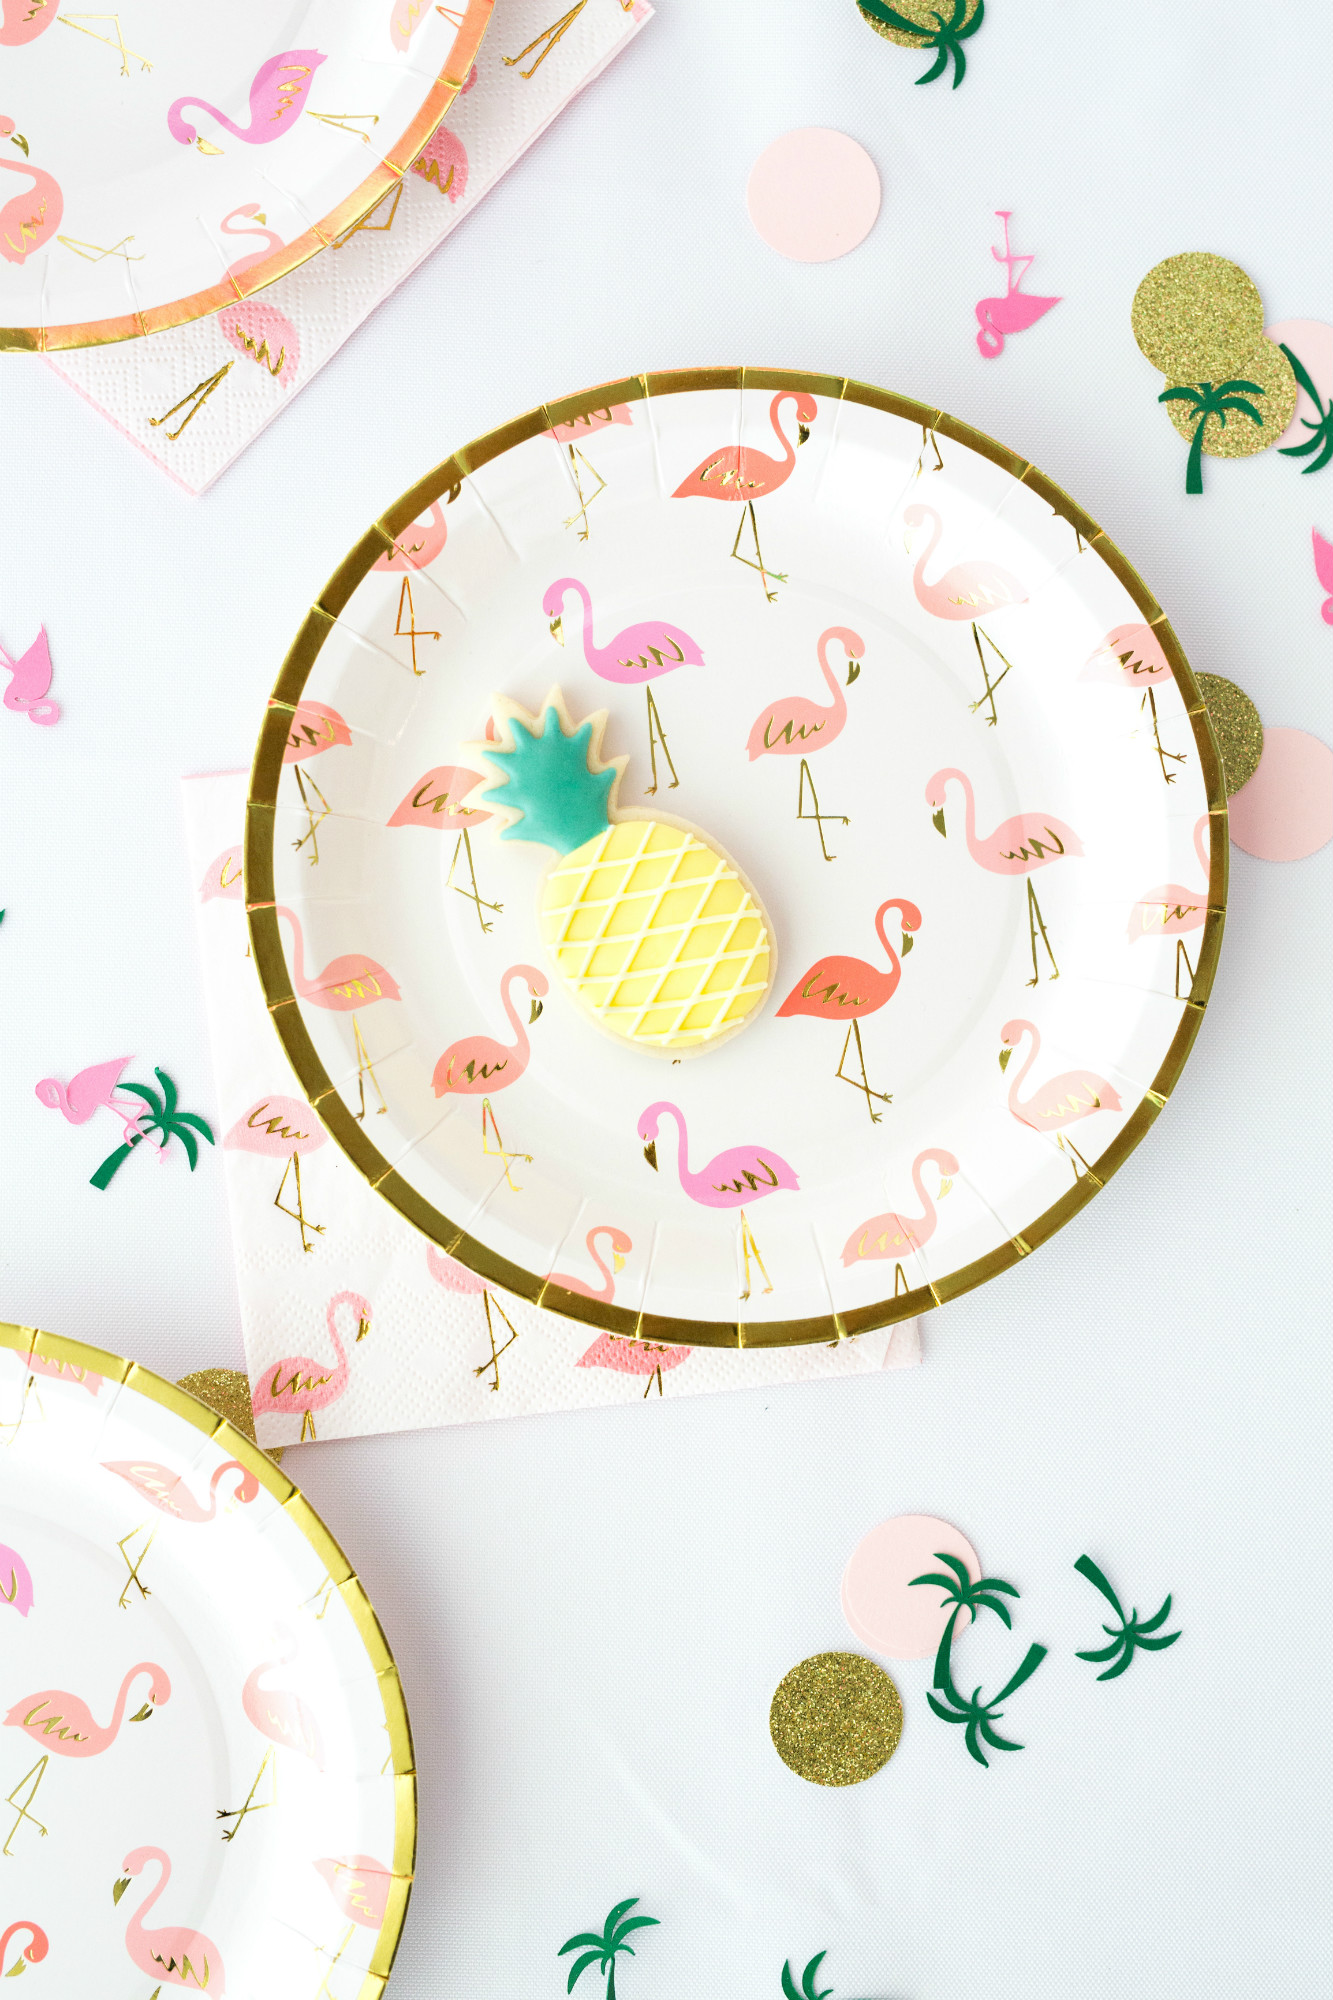 Flamingo Plates and Napkins from Palm Springs Girls Night In featuring Rose Mini Moet Champagne| Black Twine